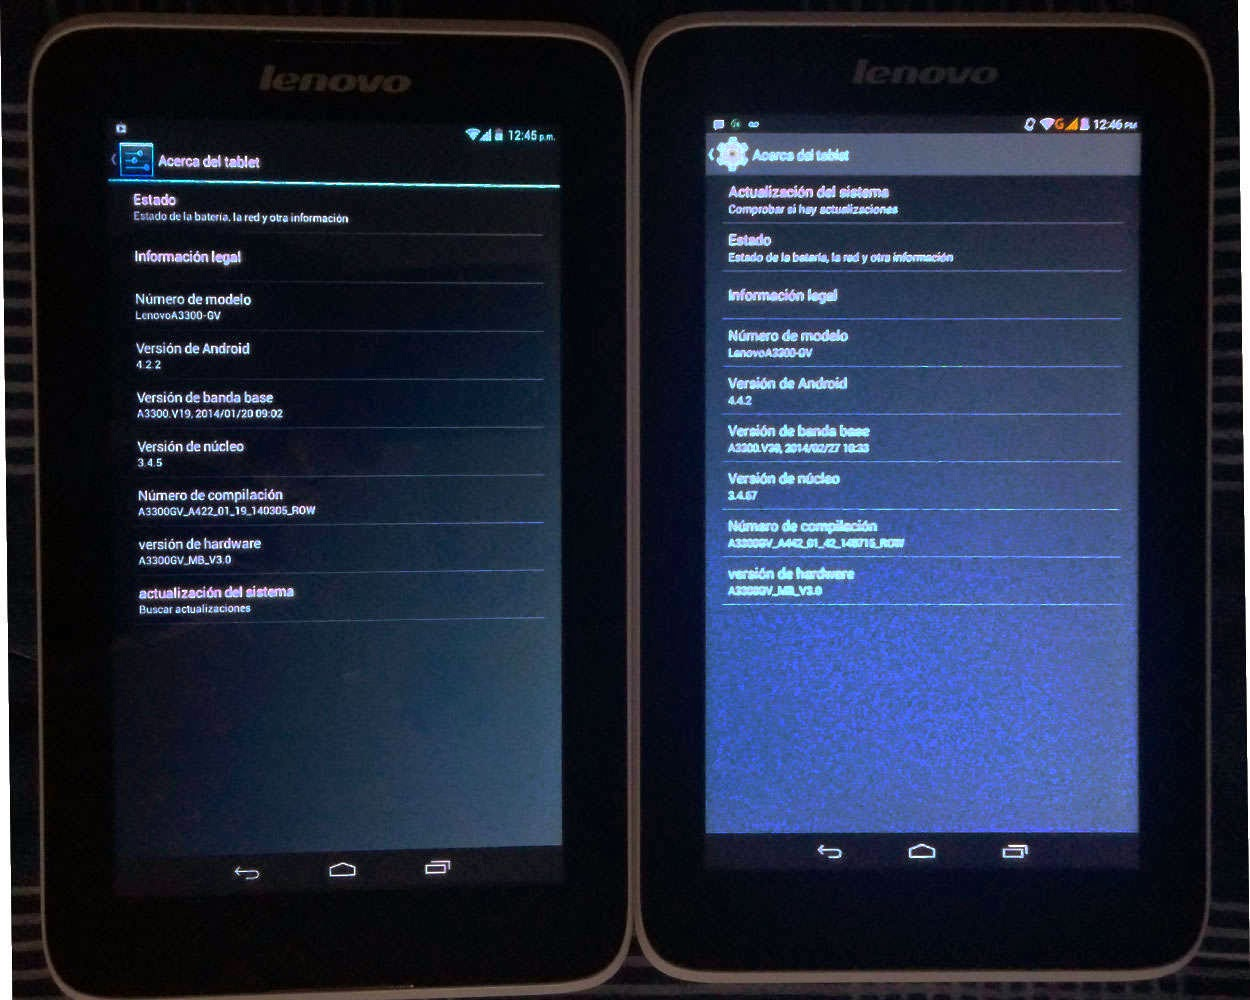 Download Stock ROM for Lenovo A3300 GV / HV For Free Without Survey